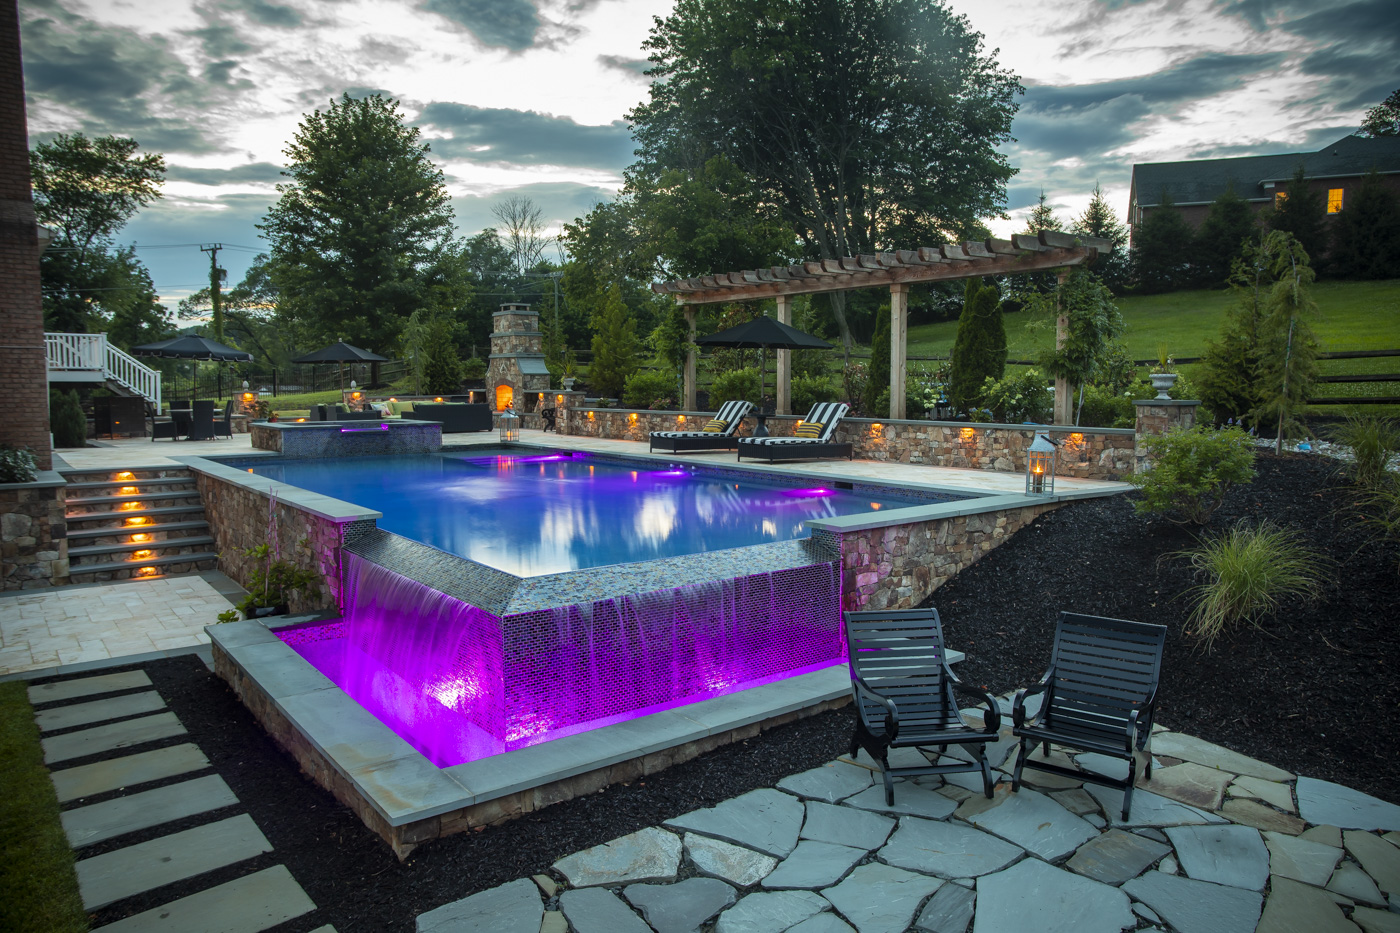 5 Telltale Signs of Great Pool Builders in Ashburn, Aldie, or Leesburg, VA